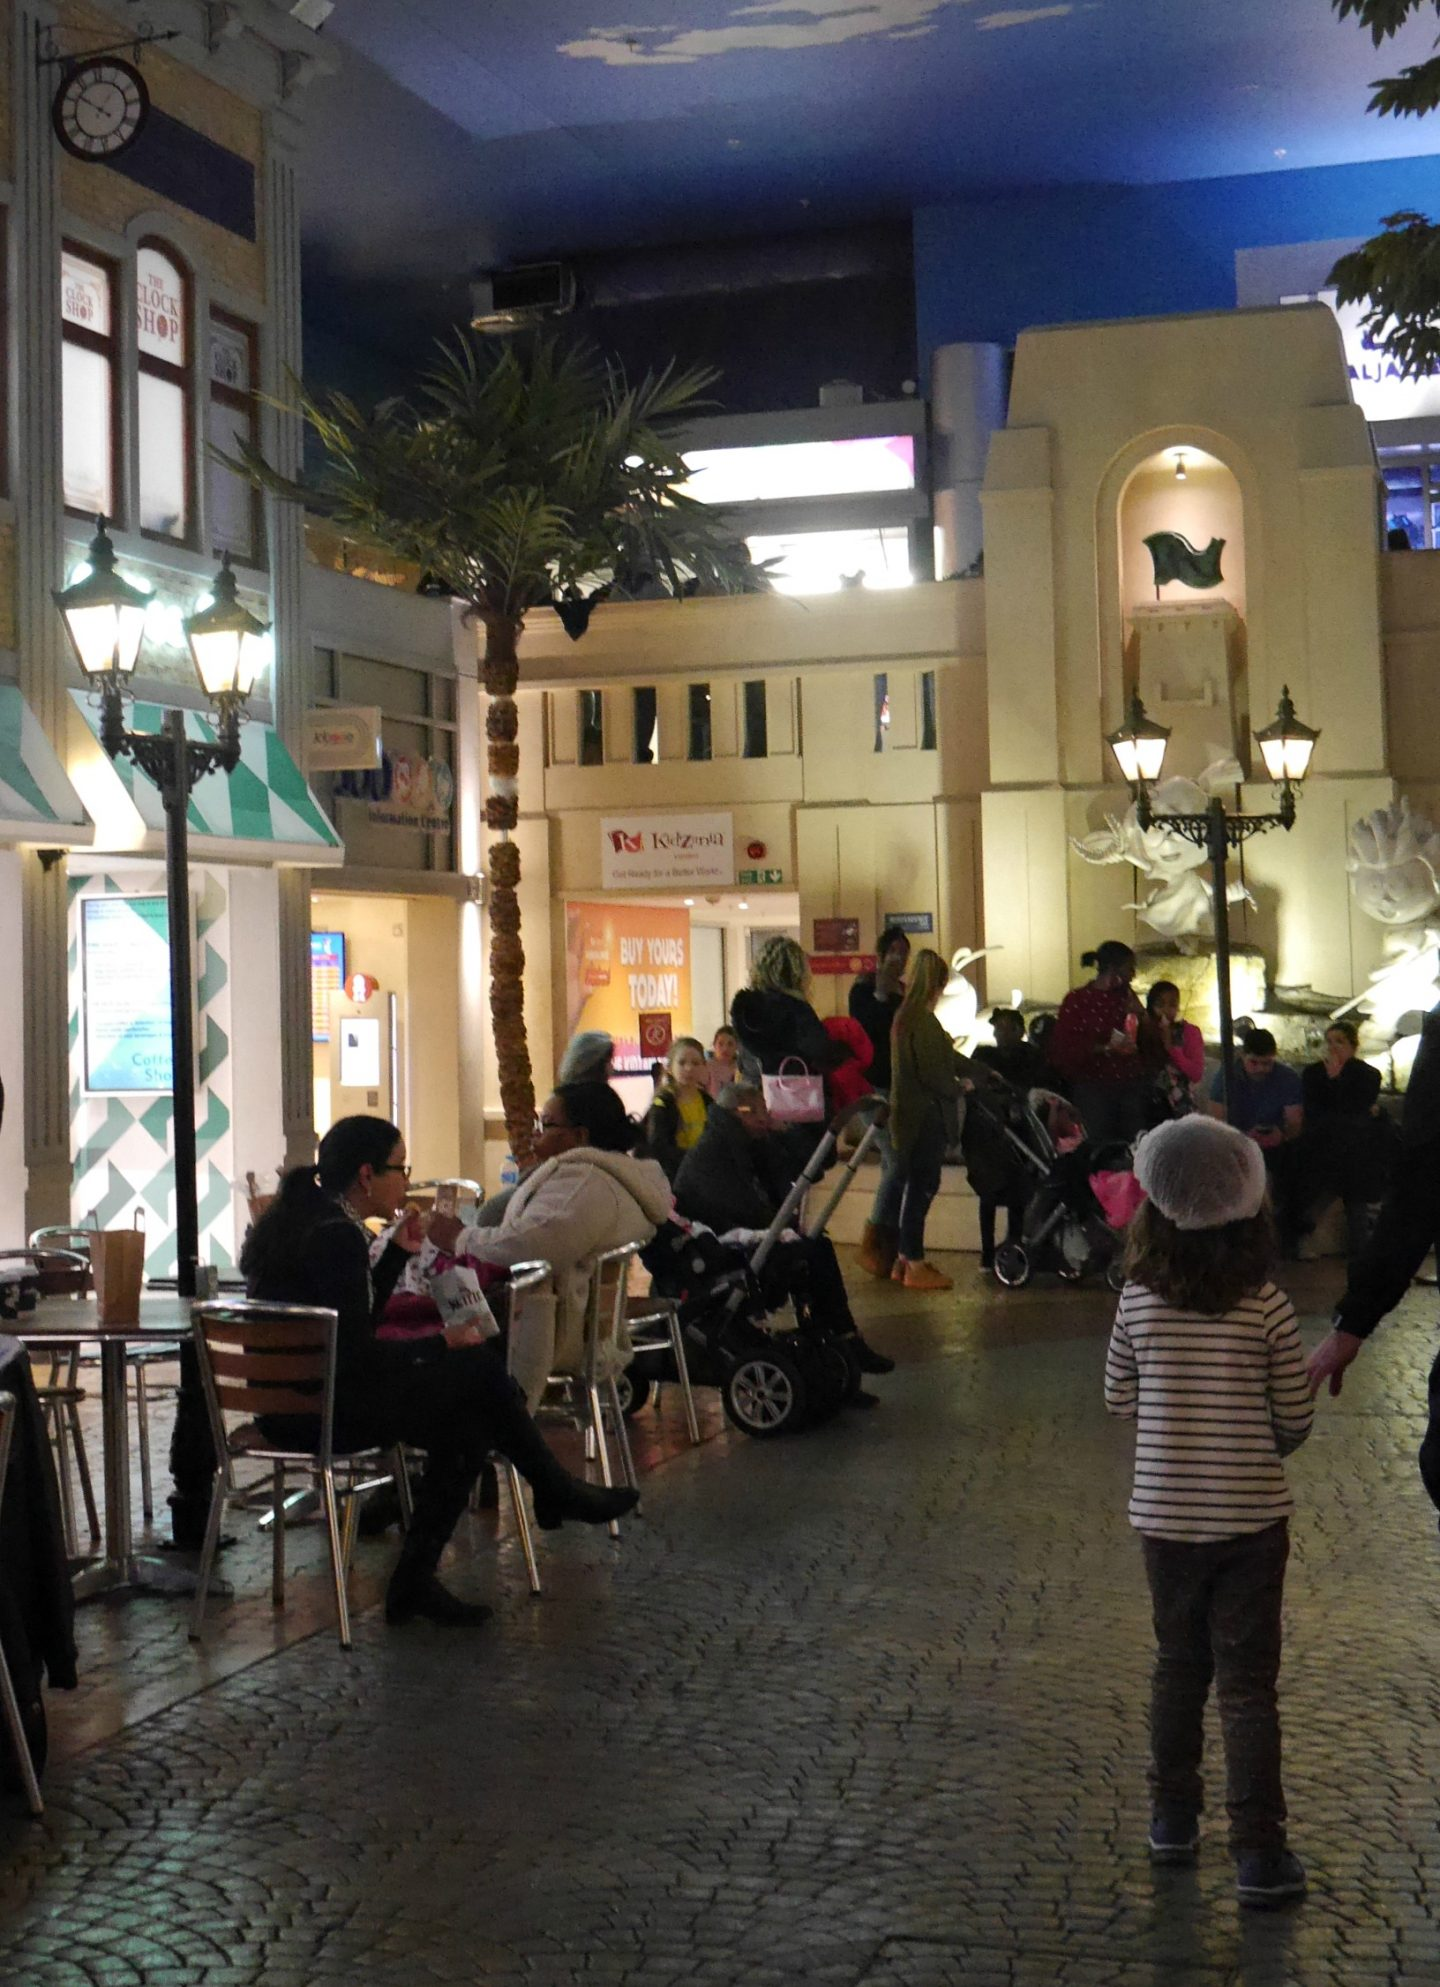 Kidzania London review - walking around